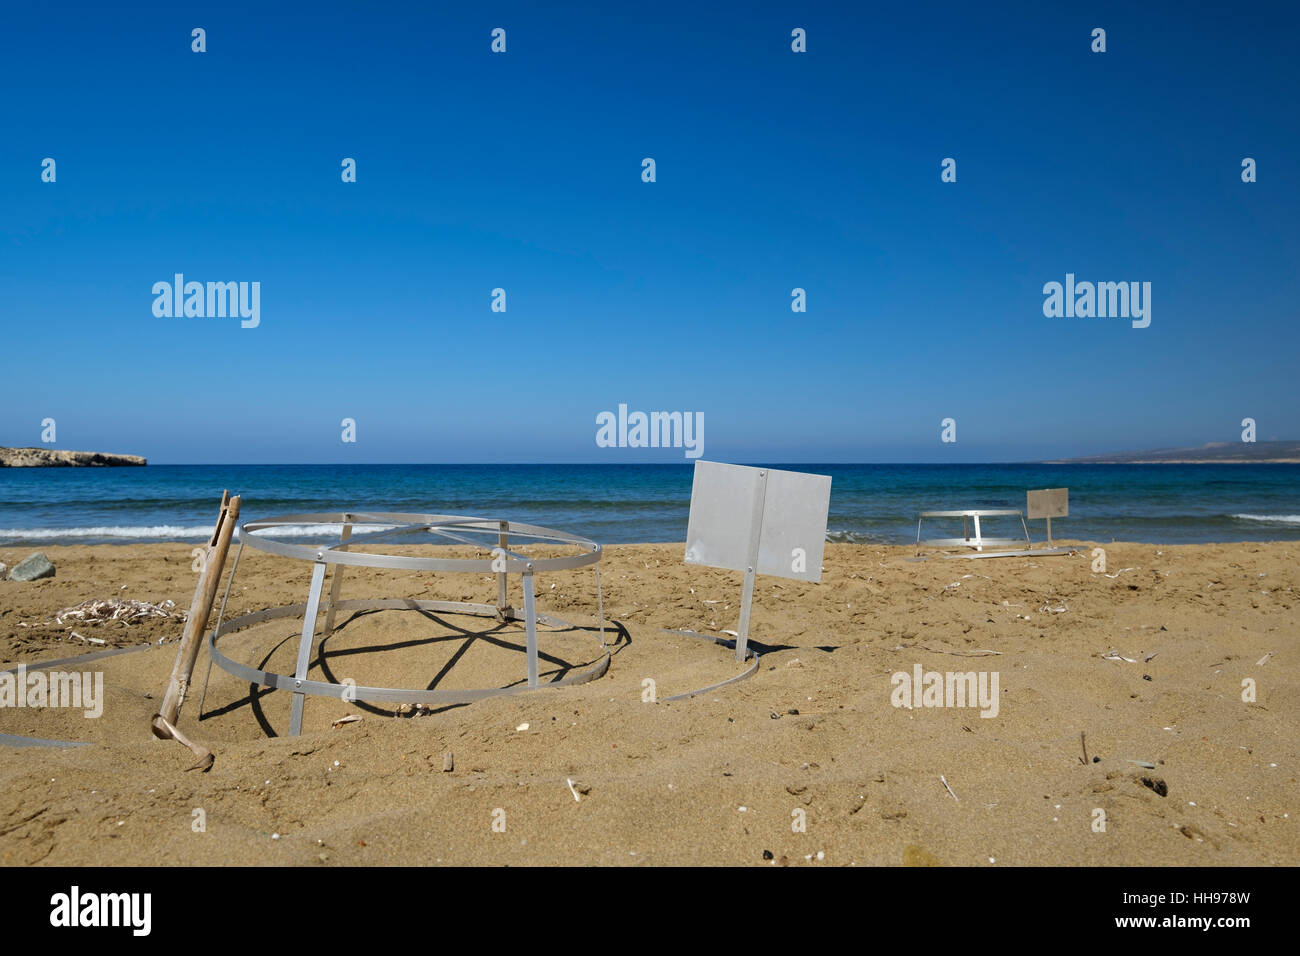 with iron racks protected sea turtles nests on the beach in Cyprus Stock Photo